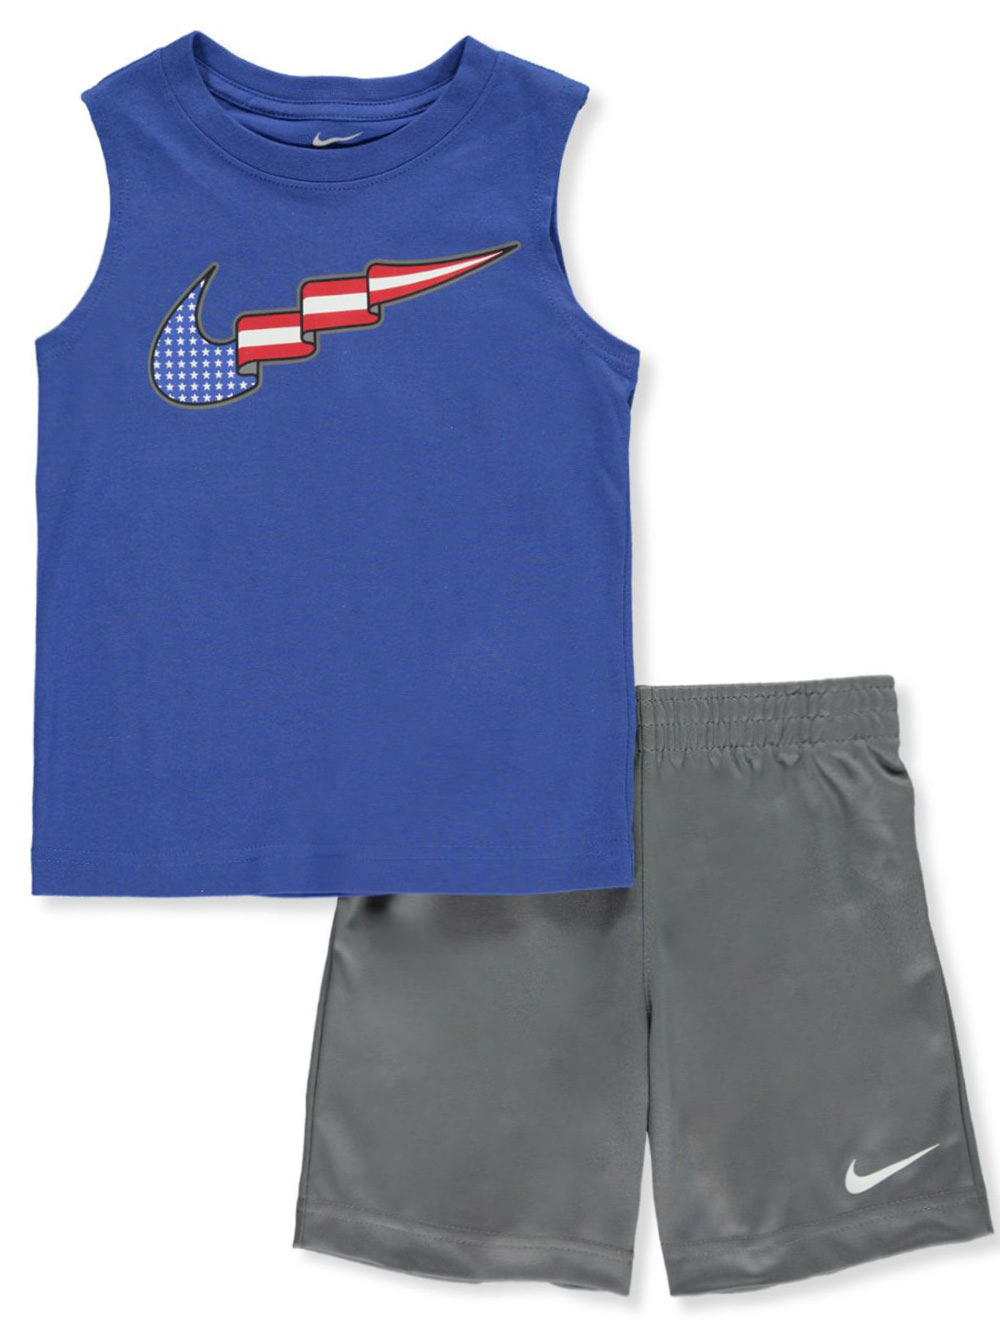 Boys' Americana 2-Piece Shorts Set Outfit